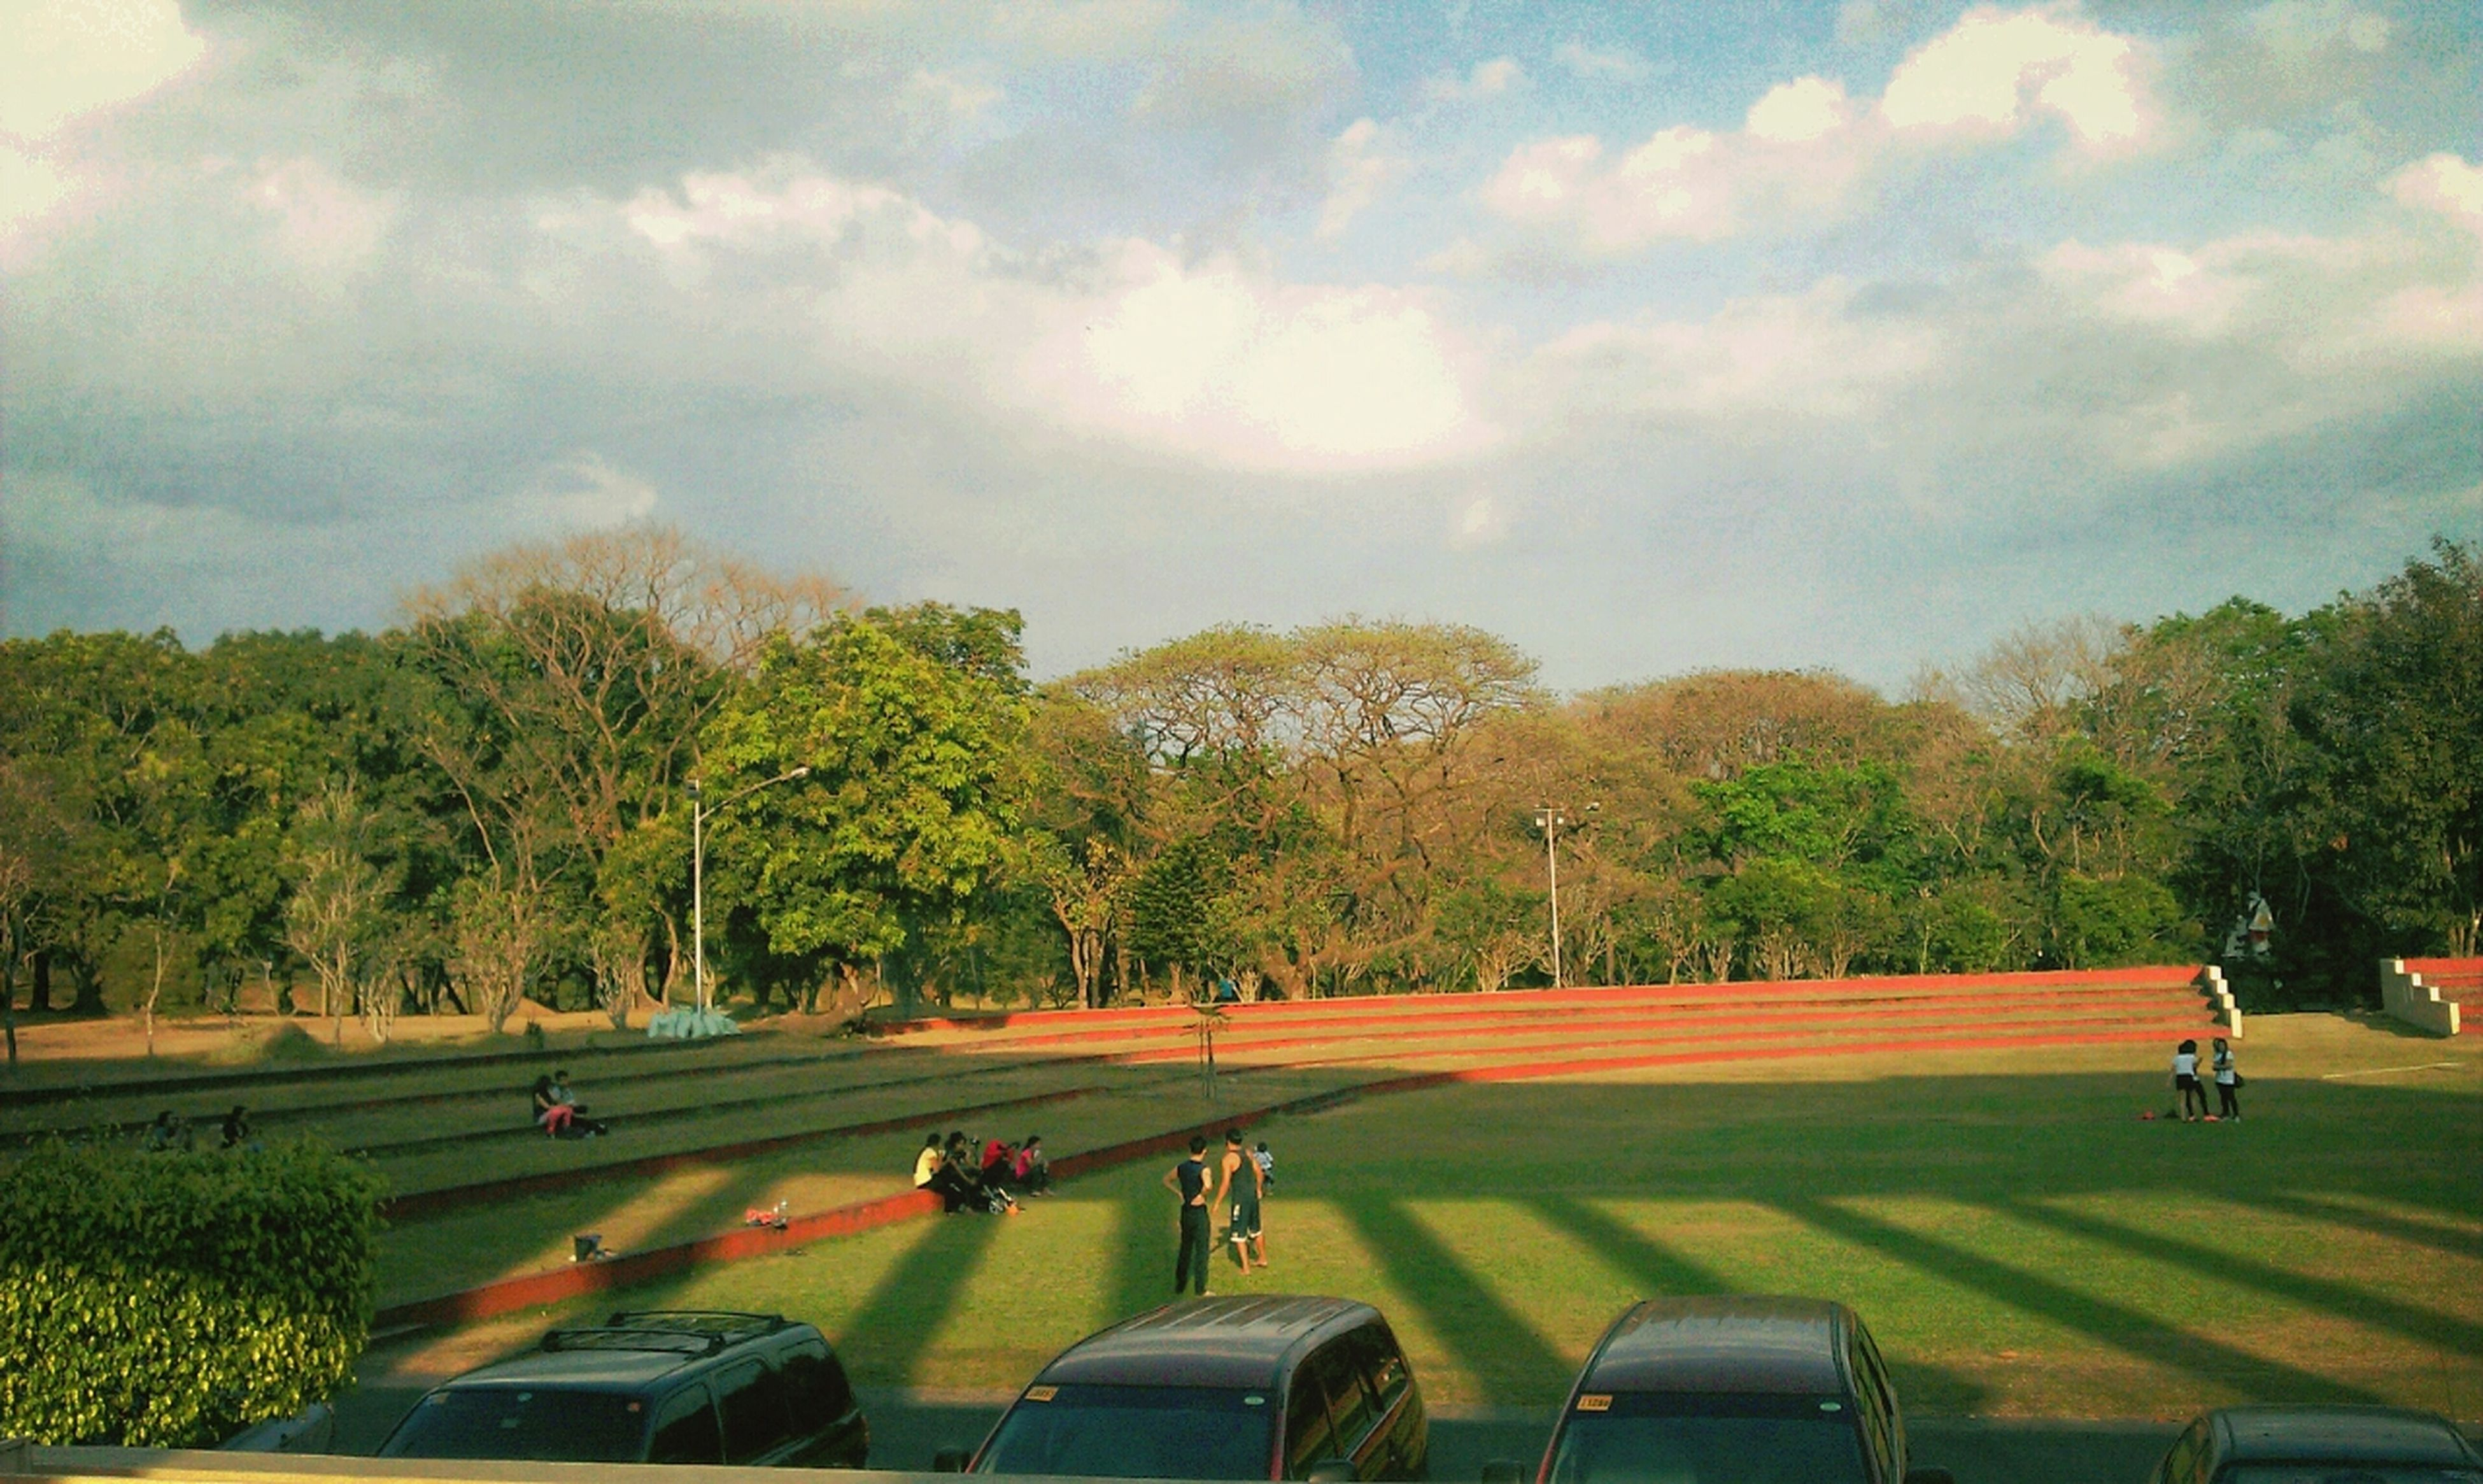 tree, grass, sky, cloud - sky, green color, large group of people, park - man made space, leisure activity, growth, lifestyles, men, park, cloud, person, nature, cloudy, landscape, tranquility, field